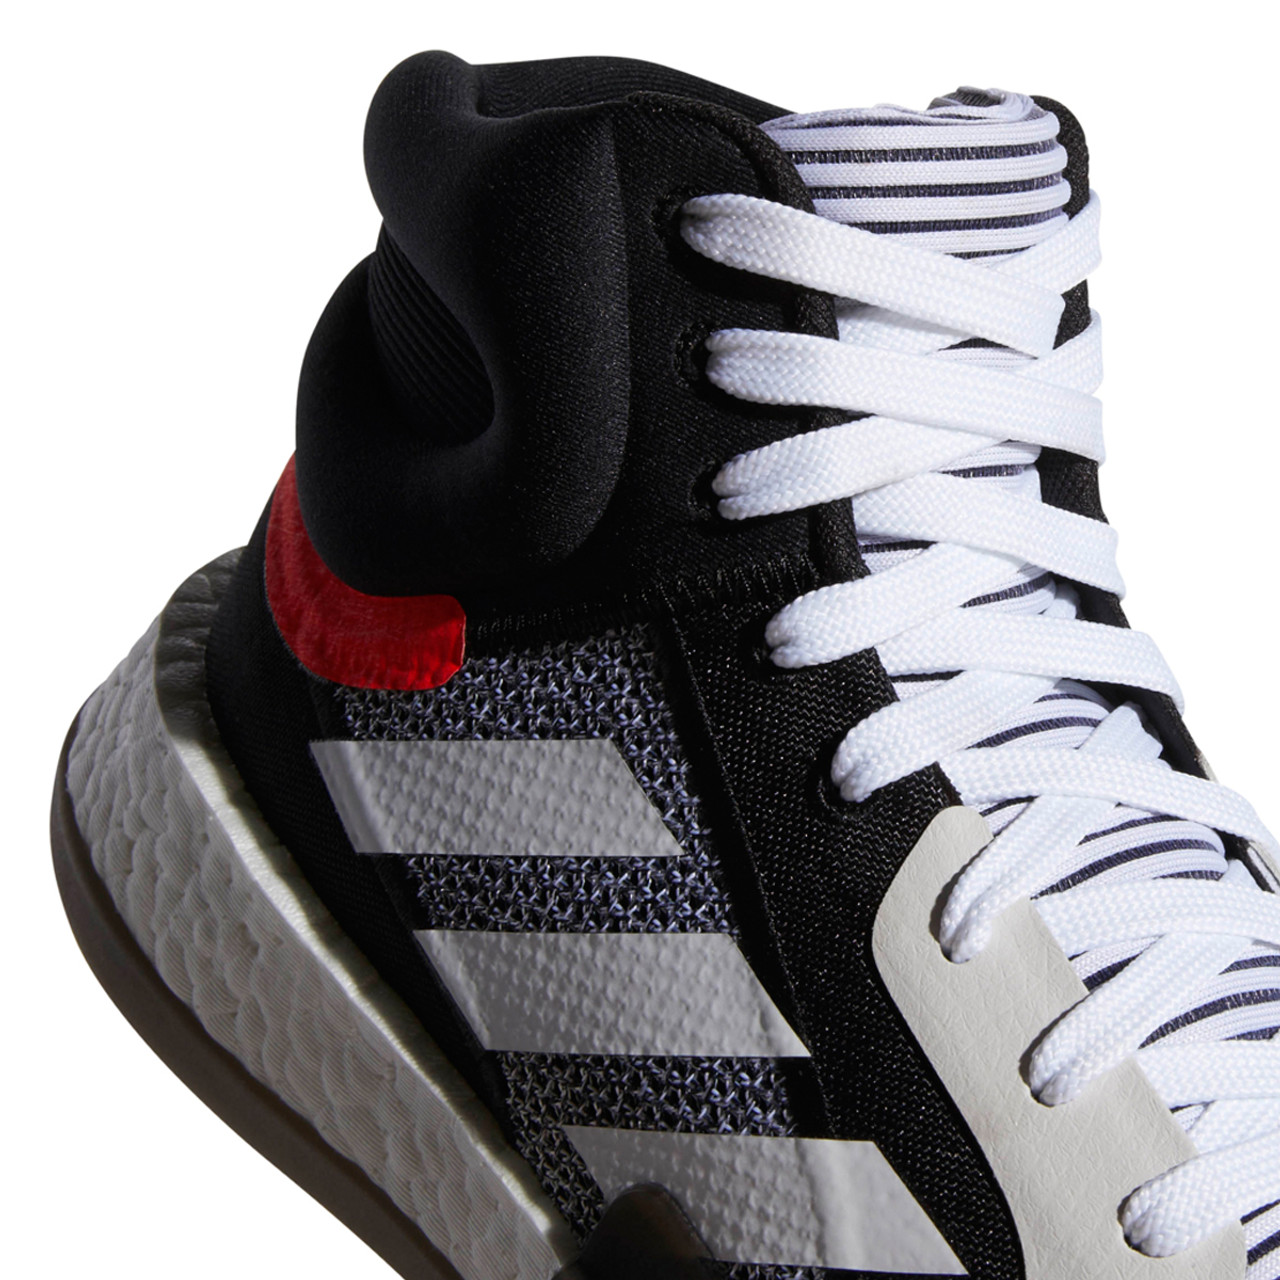 huge discount 41208 087e6 ... Adidas Marquee Boost Mens Basketball Sneakers BB7822 ...